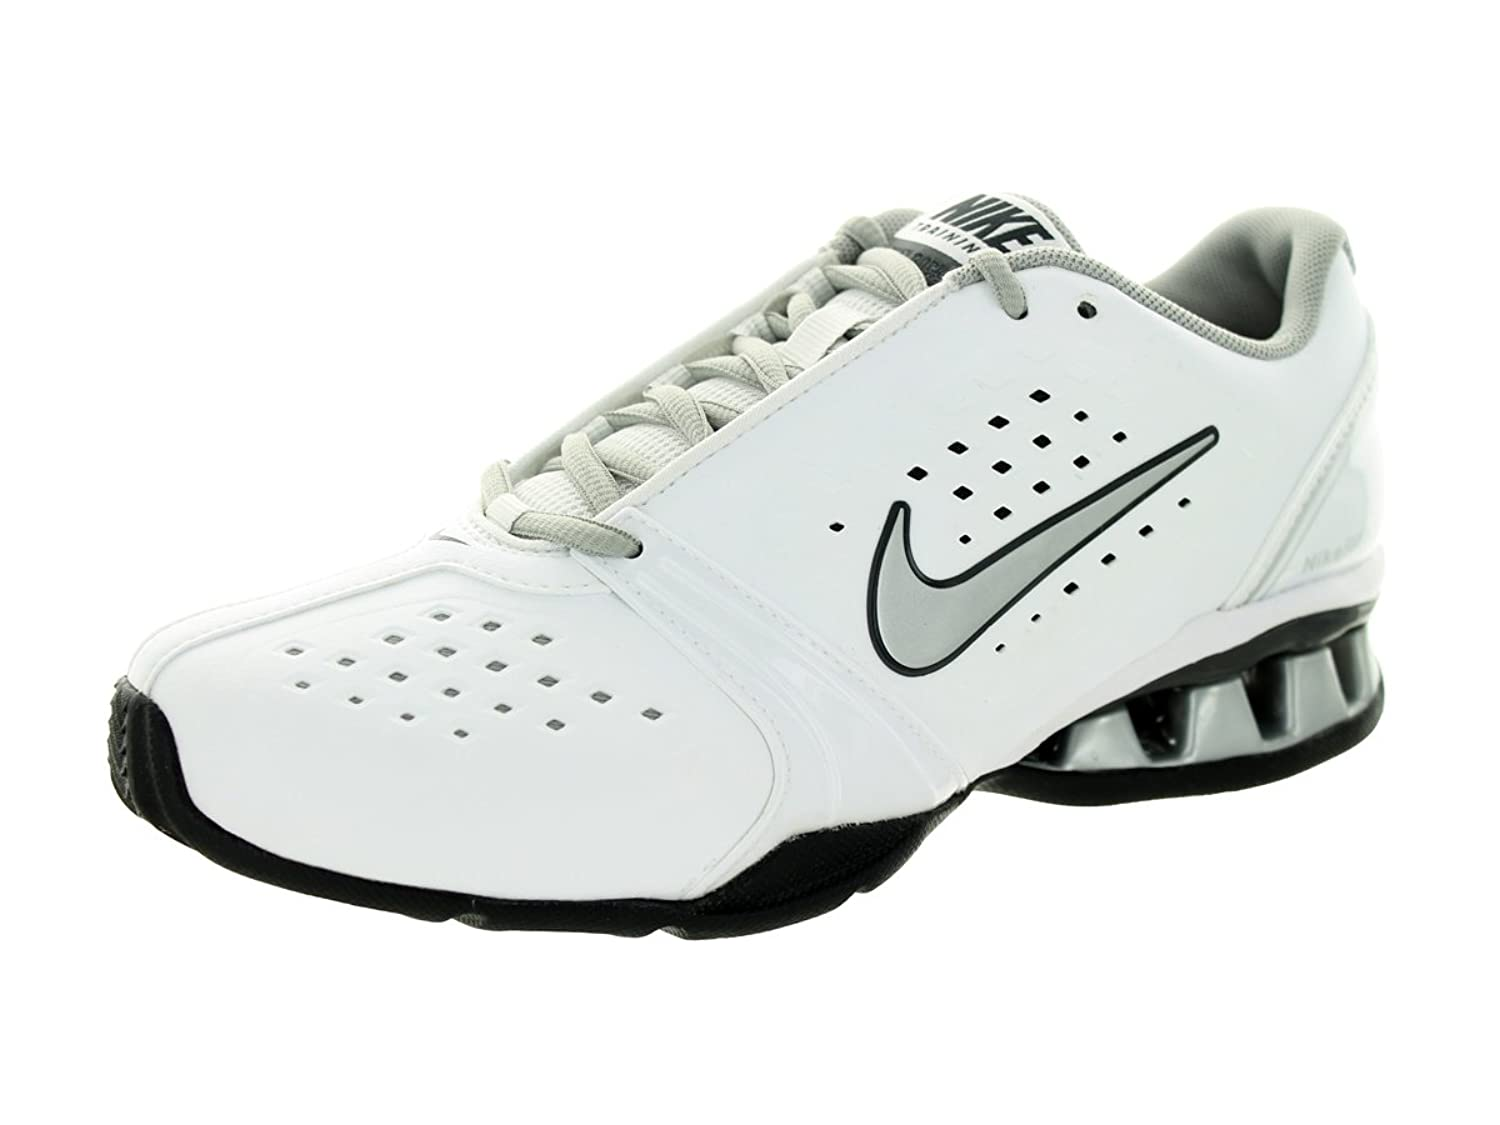 Nike Reax Shoes Women